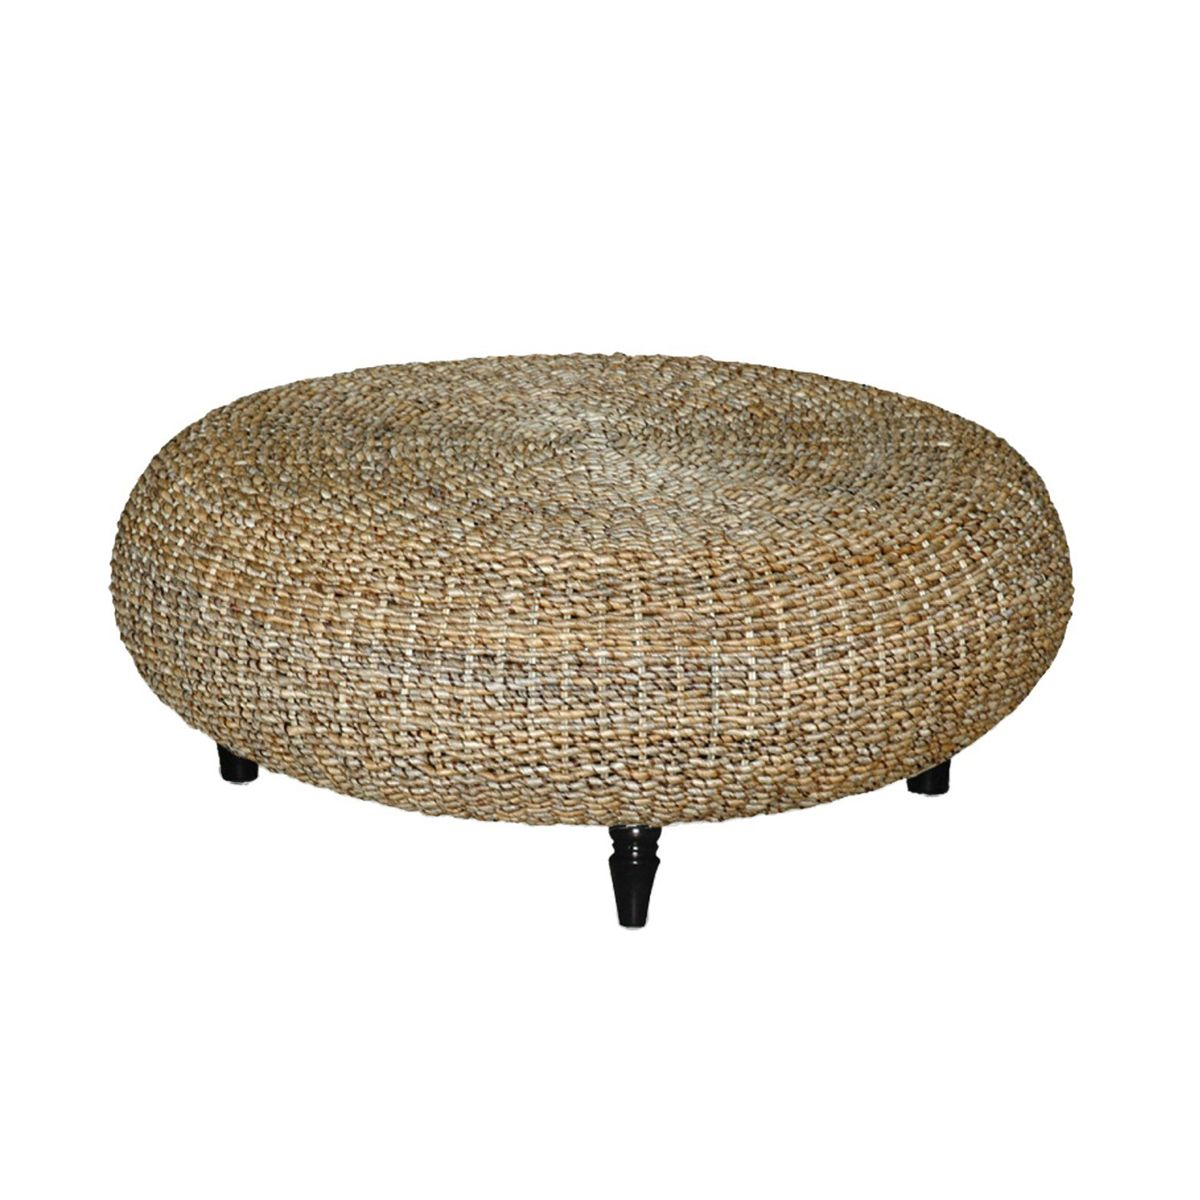 Indonesian Rattan Coffee Table | dotandbo.com Love this for a great ...